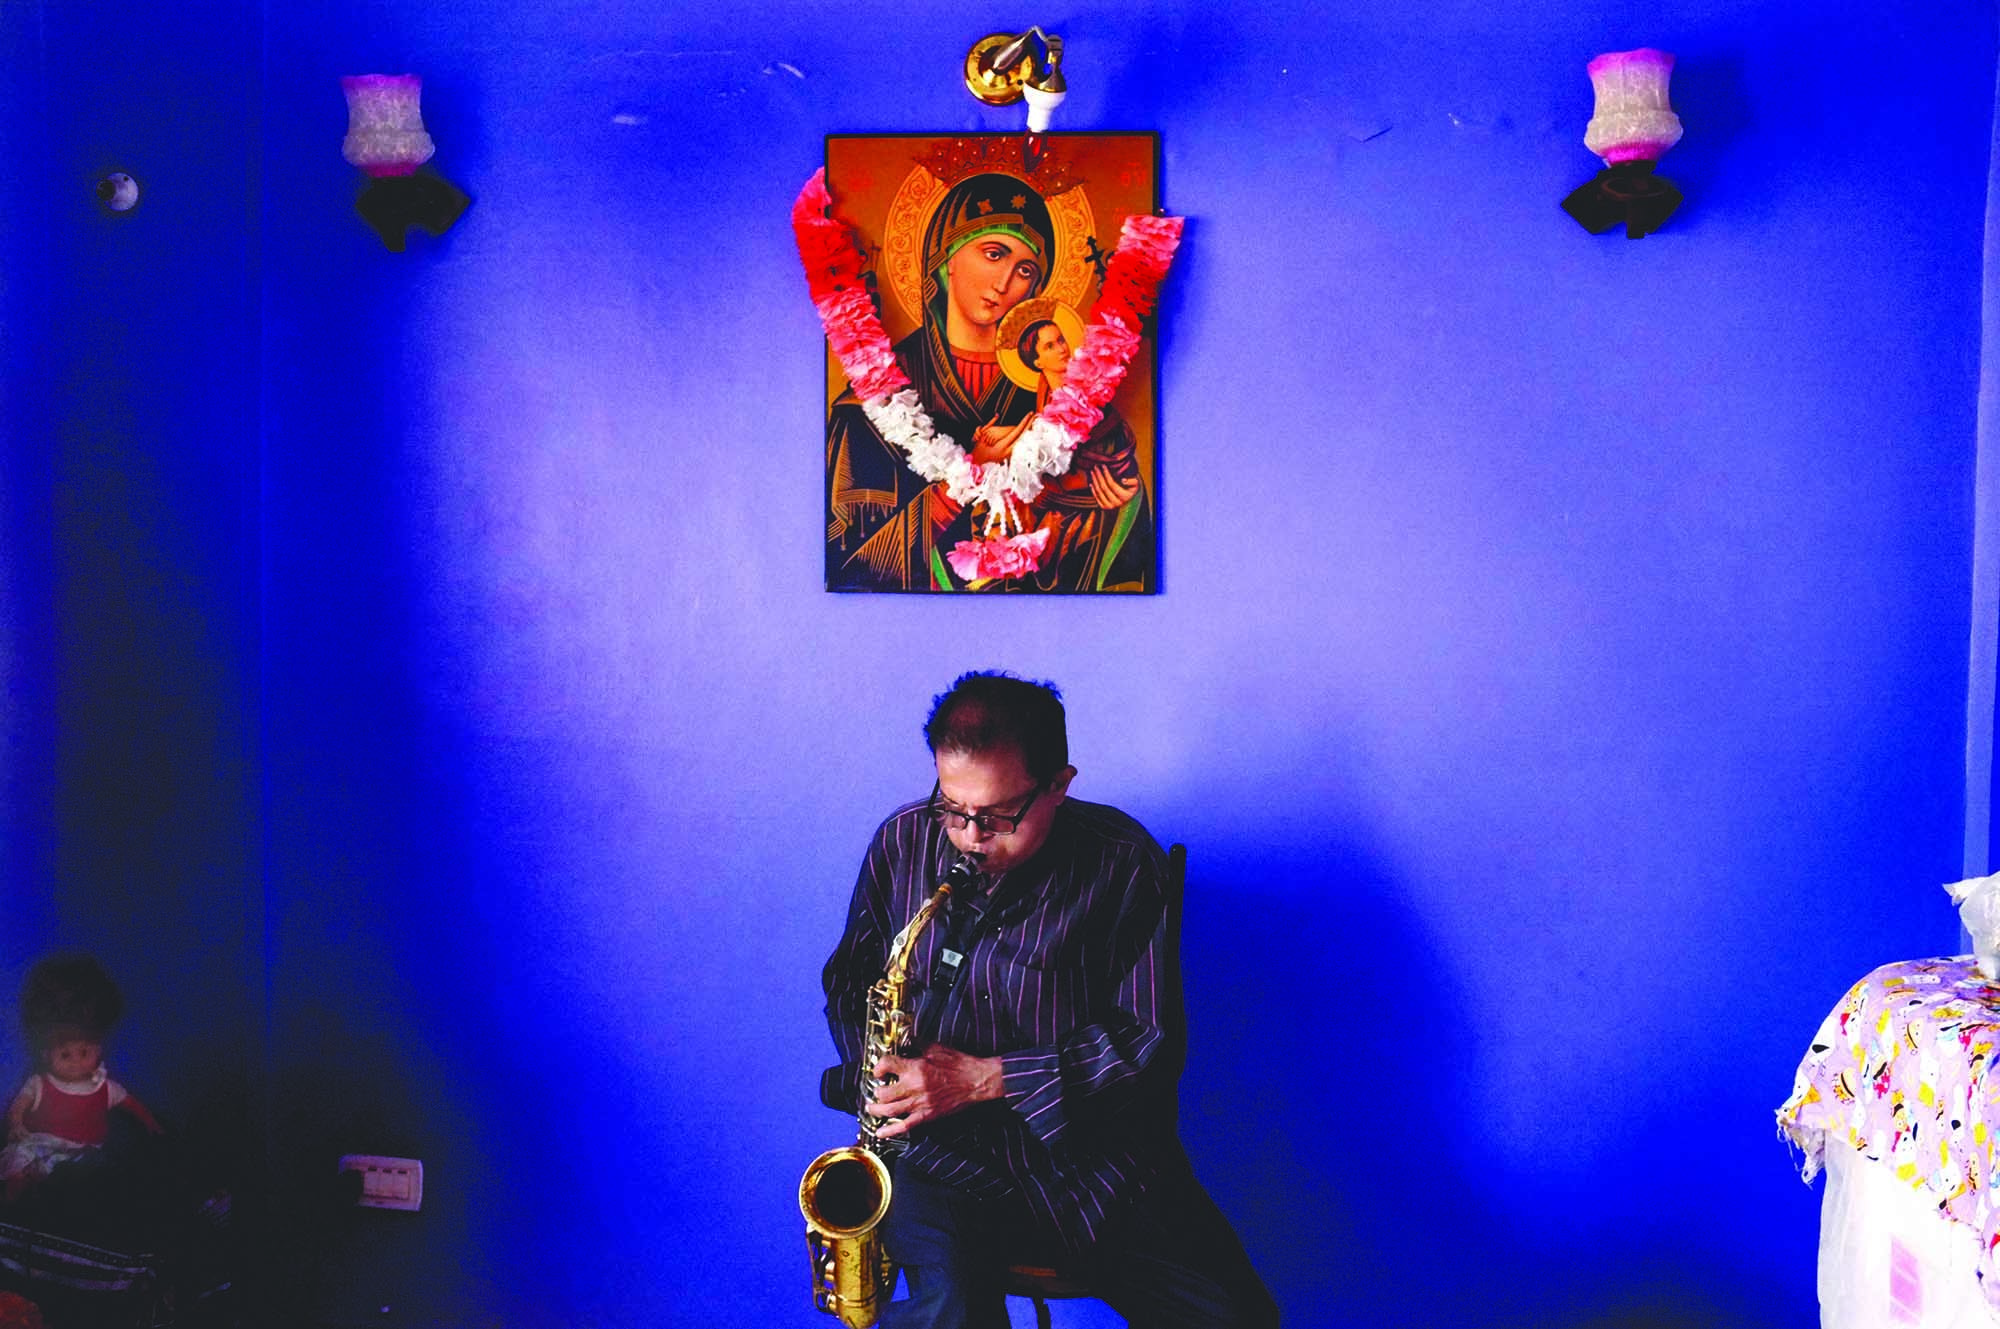 Hillary Furtado playing the saxophone at his home in Karachi. Furtado was part of a generation whose forefathers left Goa in the 18th century to seek greener pastures in Mumbai, Karachi and even further afield. The Goan community which settled in Karachi embraced the city and contributed to its development. Perhaps their biggest contribution was to Karachi's music scene. Naturally drawn to any musical score that brought with it a rhythm or a 'swing', Karachi's Goan community began to form live bands and give public performances. Such was their success, they soon were much in demand to play at clubs, hotels and other night spots. When lifestyles changed significantly in Karachi in the seventies, the era of the Goan bands ended. Furtado, said to be a virtuoso on the saxophone, continued to perform from time to time at private parties until his death two years ago. (photo: Arif Mahmood/ Dawn White Star)